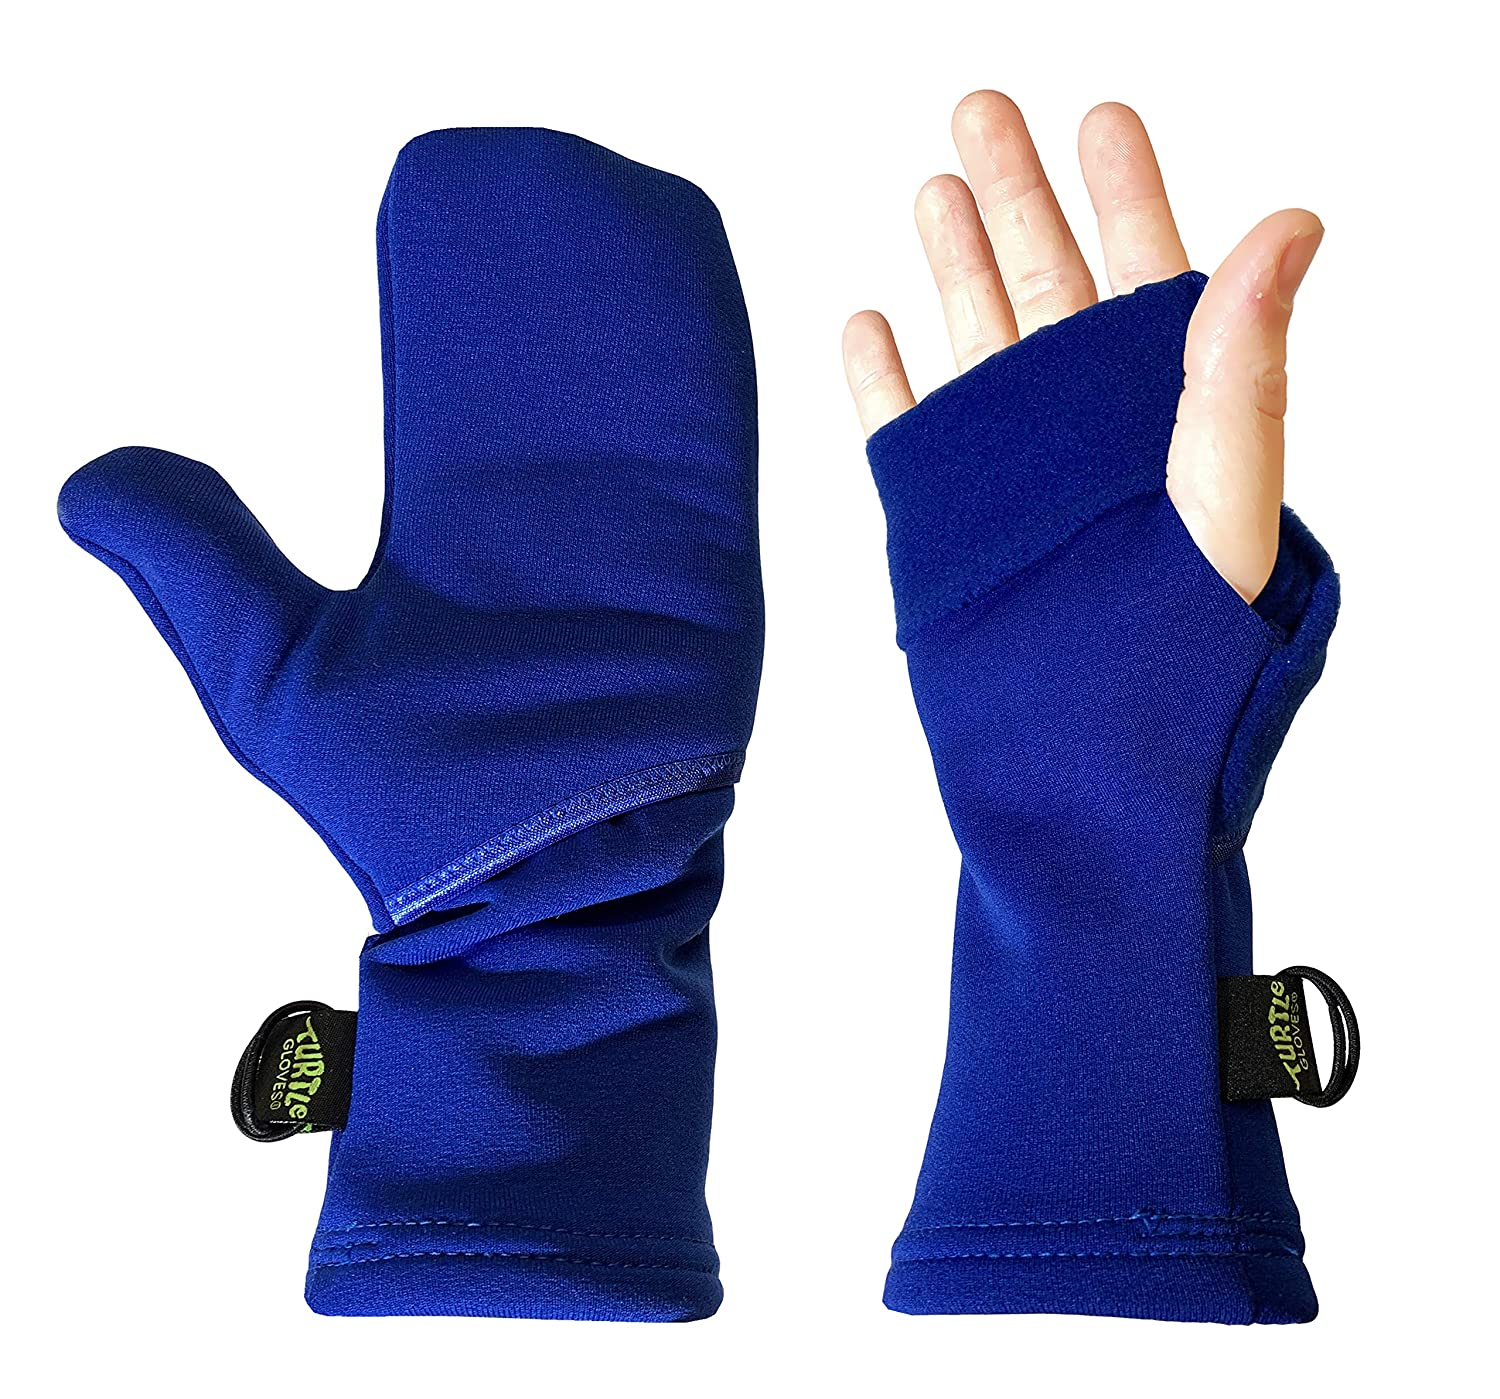 Turtle Gloves Midweight Convertible Hardface Running Mittens for Winter